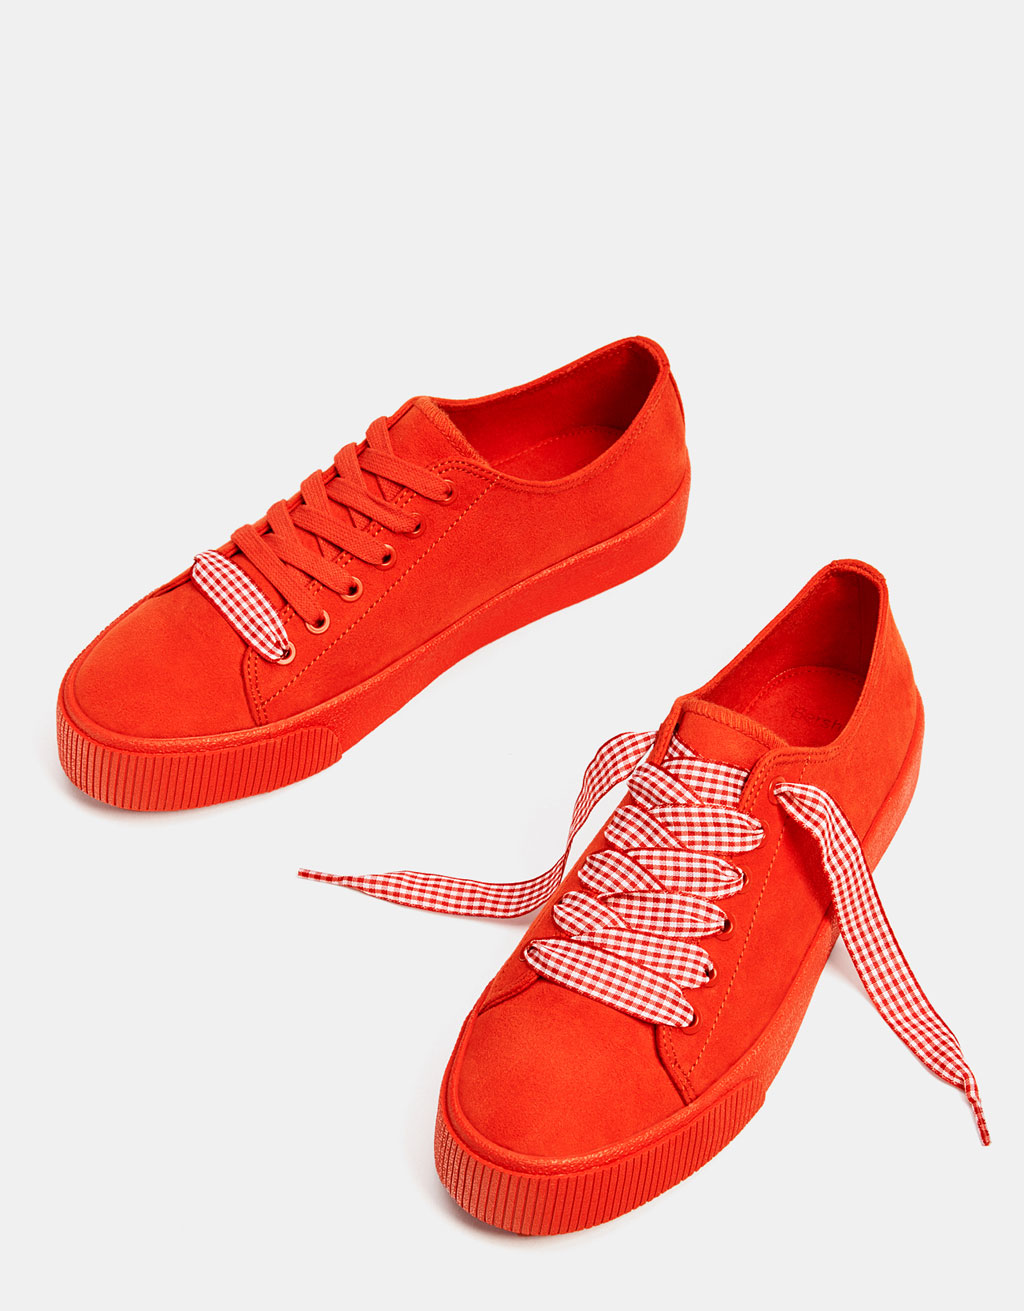 Red monochrome sneakers